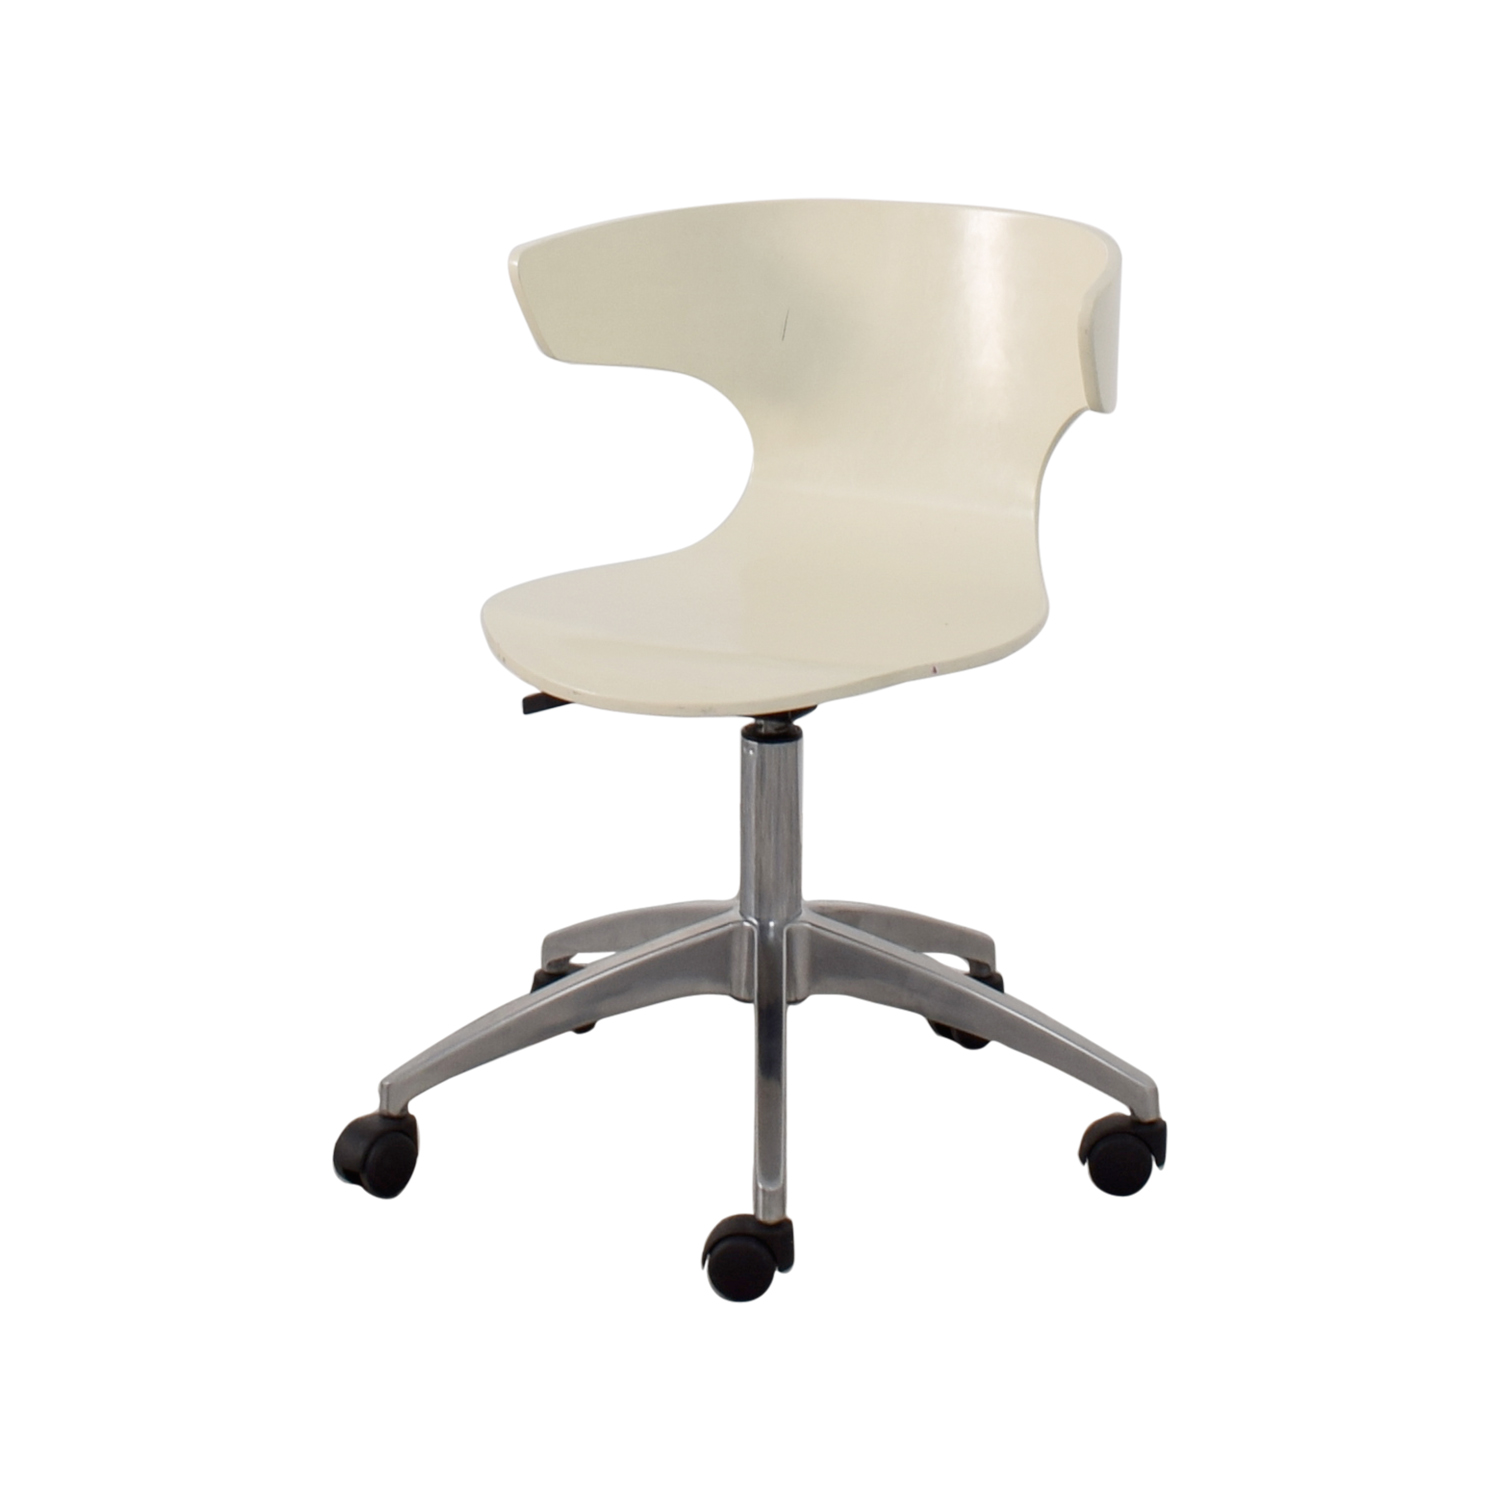 63% OFF West Elm West Elm White Modern Chair with Casters Chairs